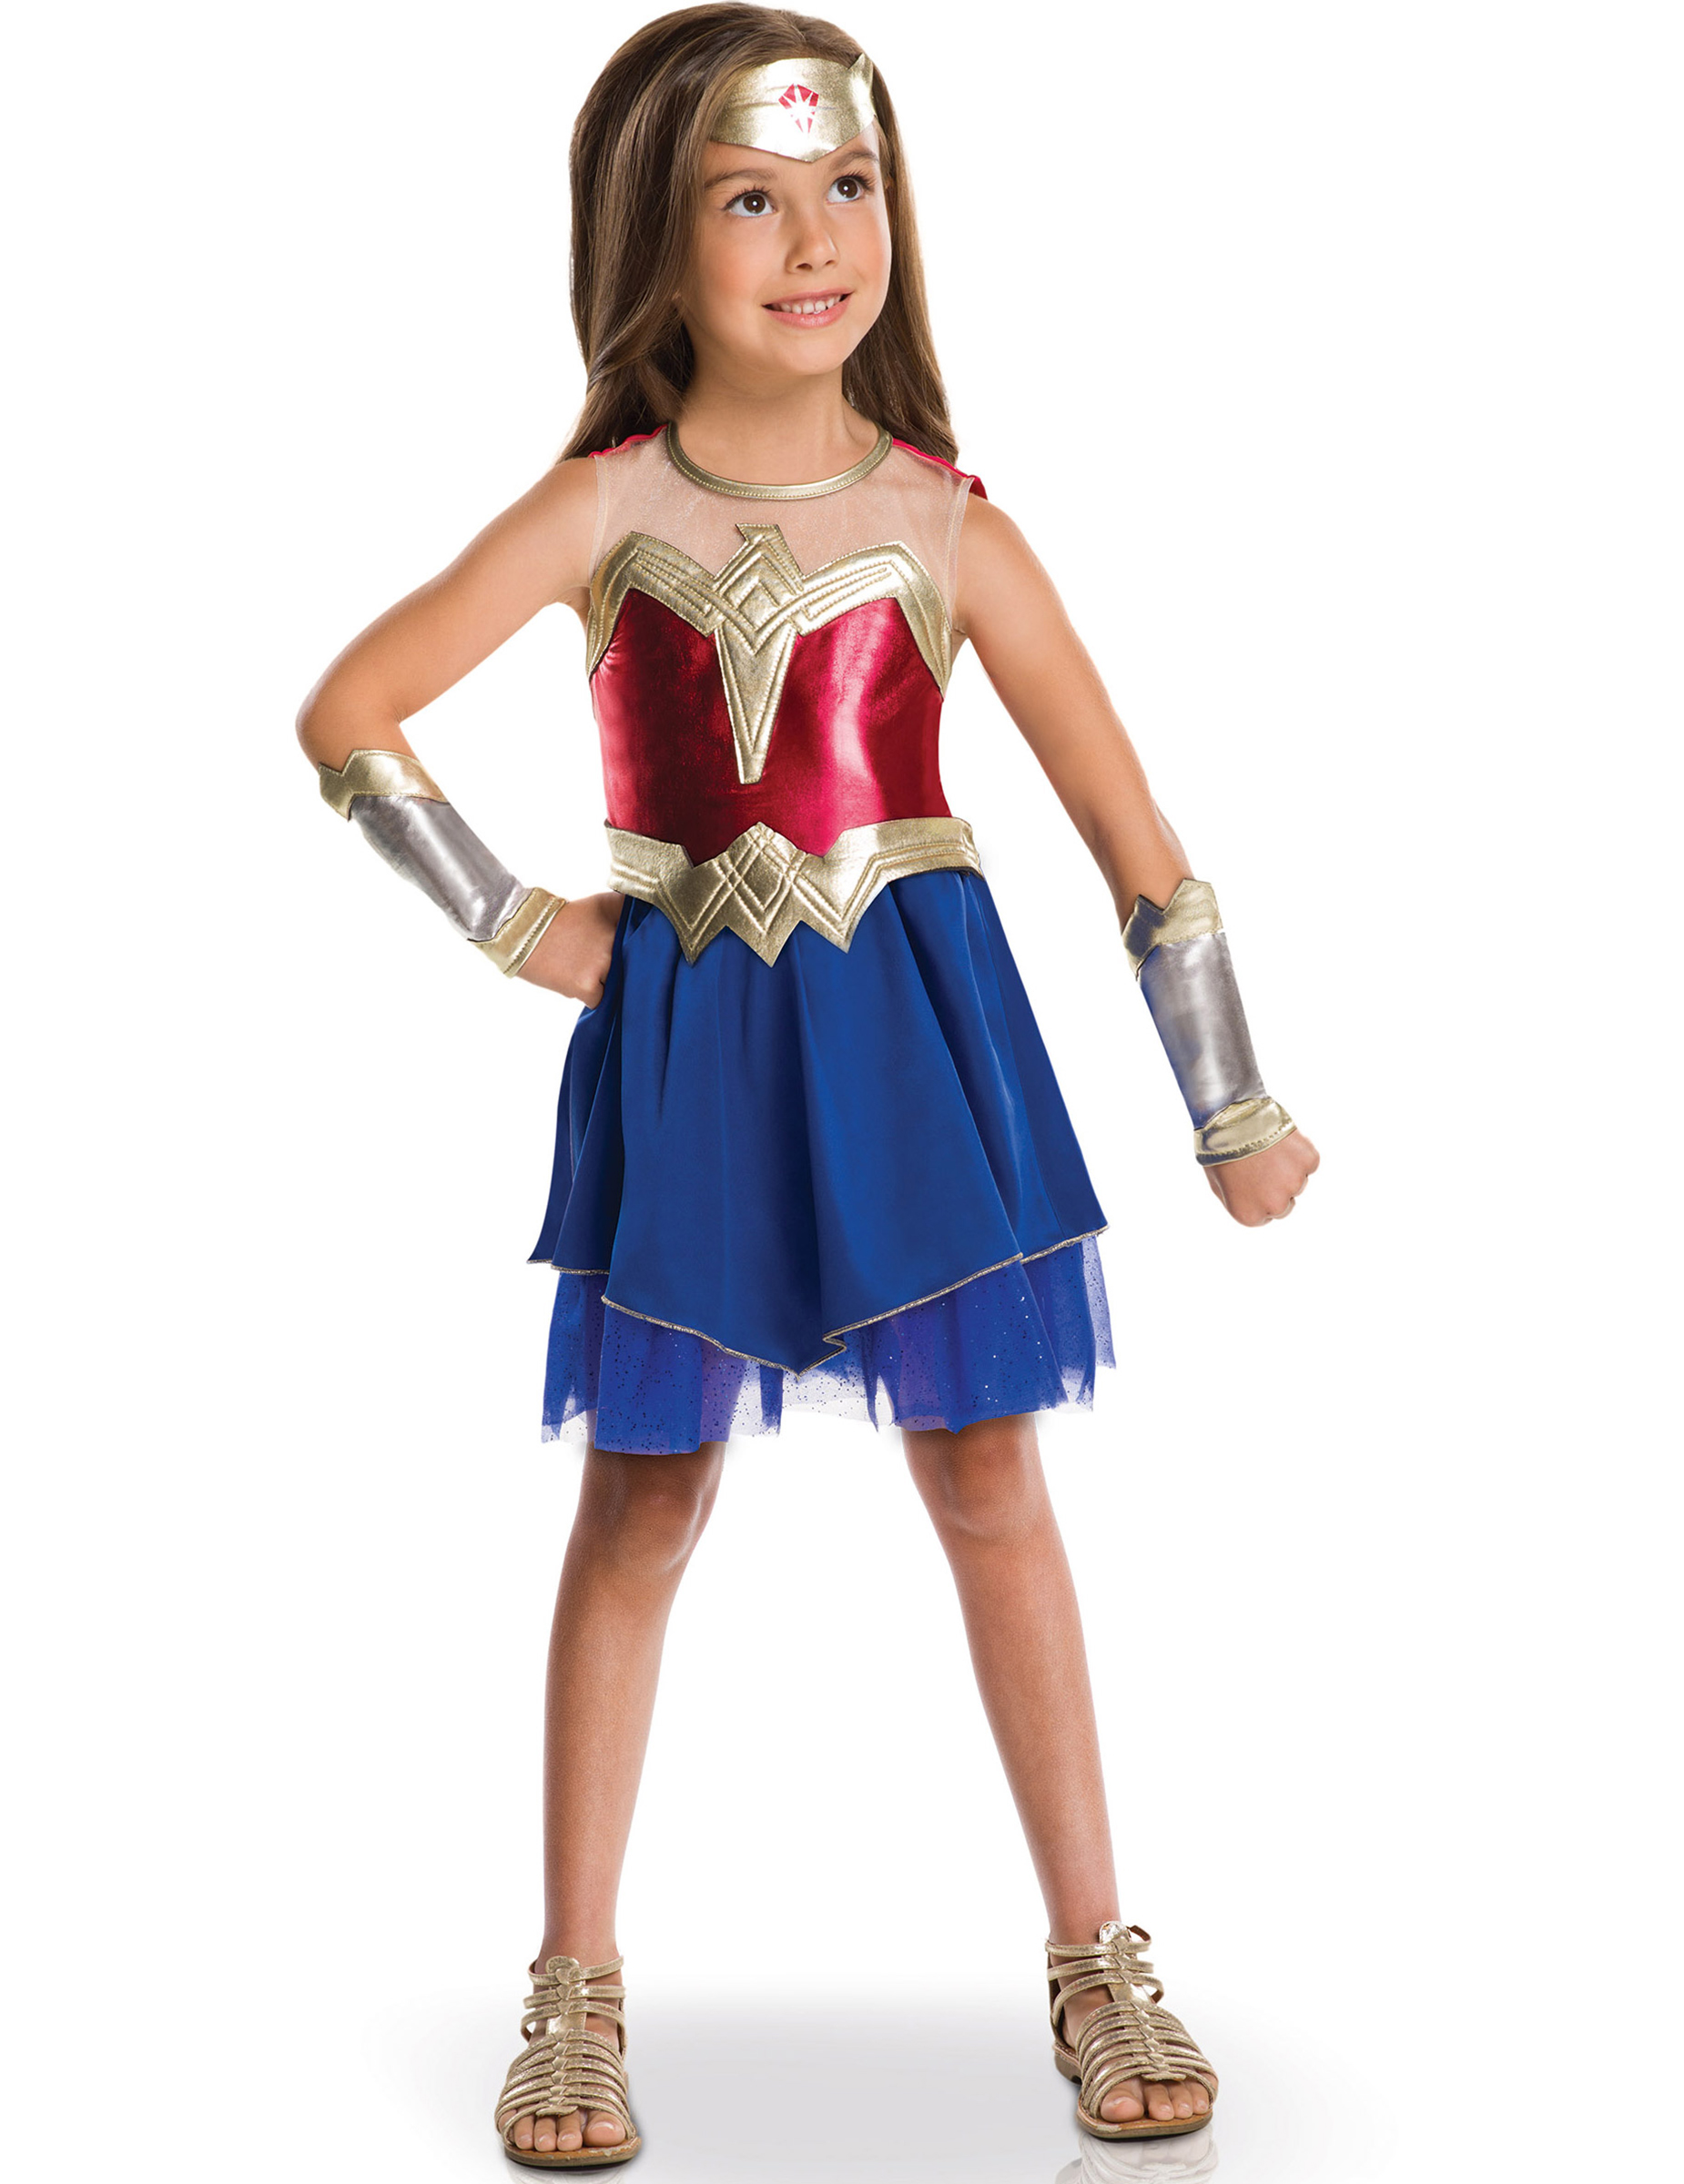 costume da wonder woman per bambina costumi bambini e vestiti di carnevale online vegaoo. Black Bedroom Furniture Sets. Home Design Ideas